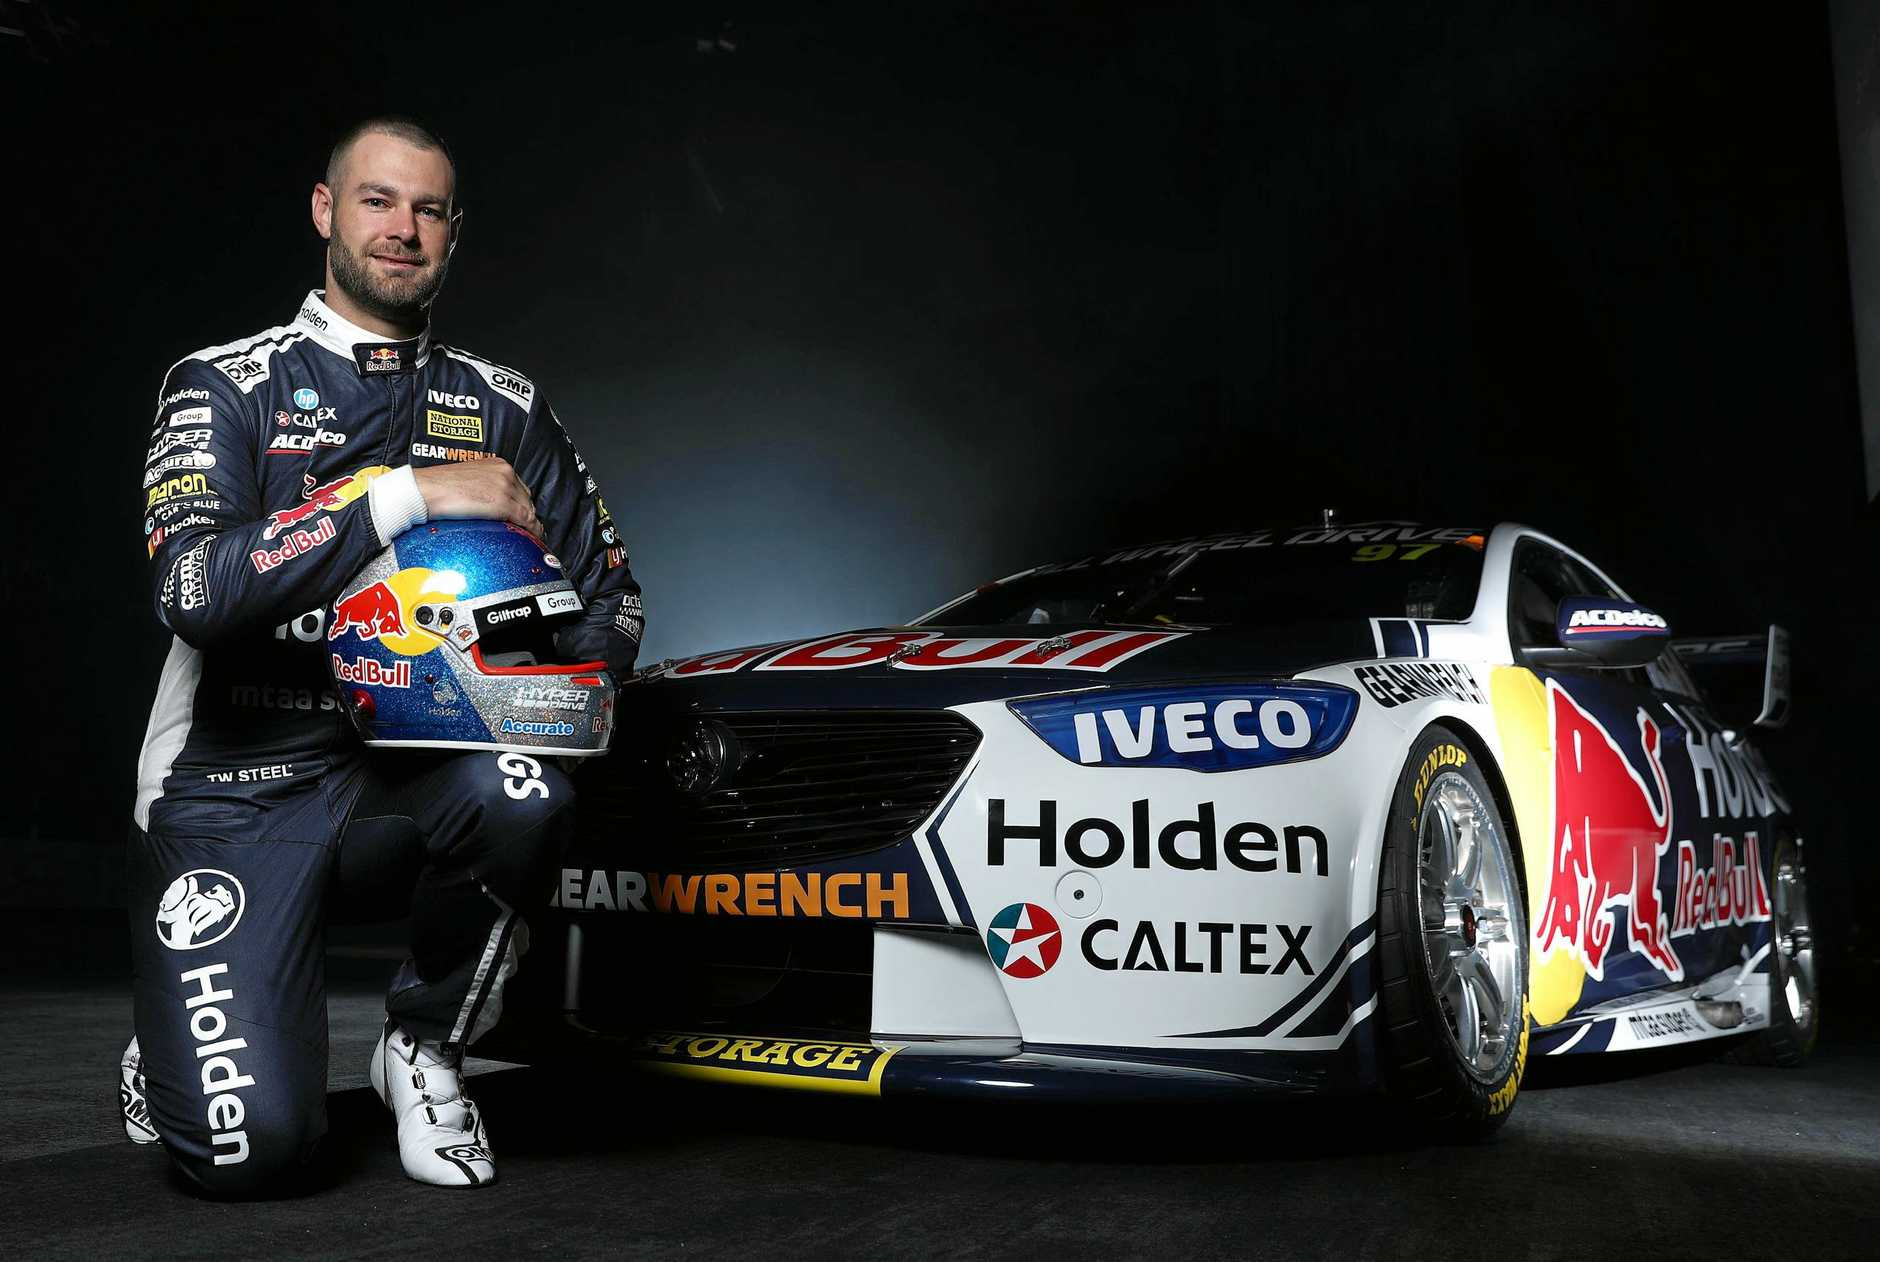 Shane van Gisbergen with the new Red Bull Racing Team Holden. (Photo by Robert Cianflone/Getty Images)